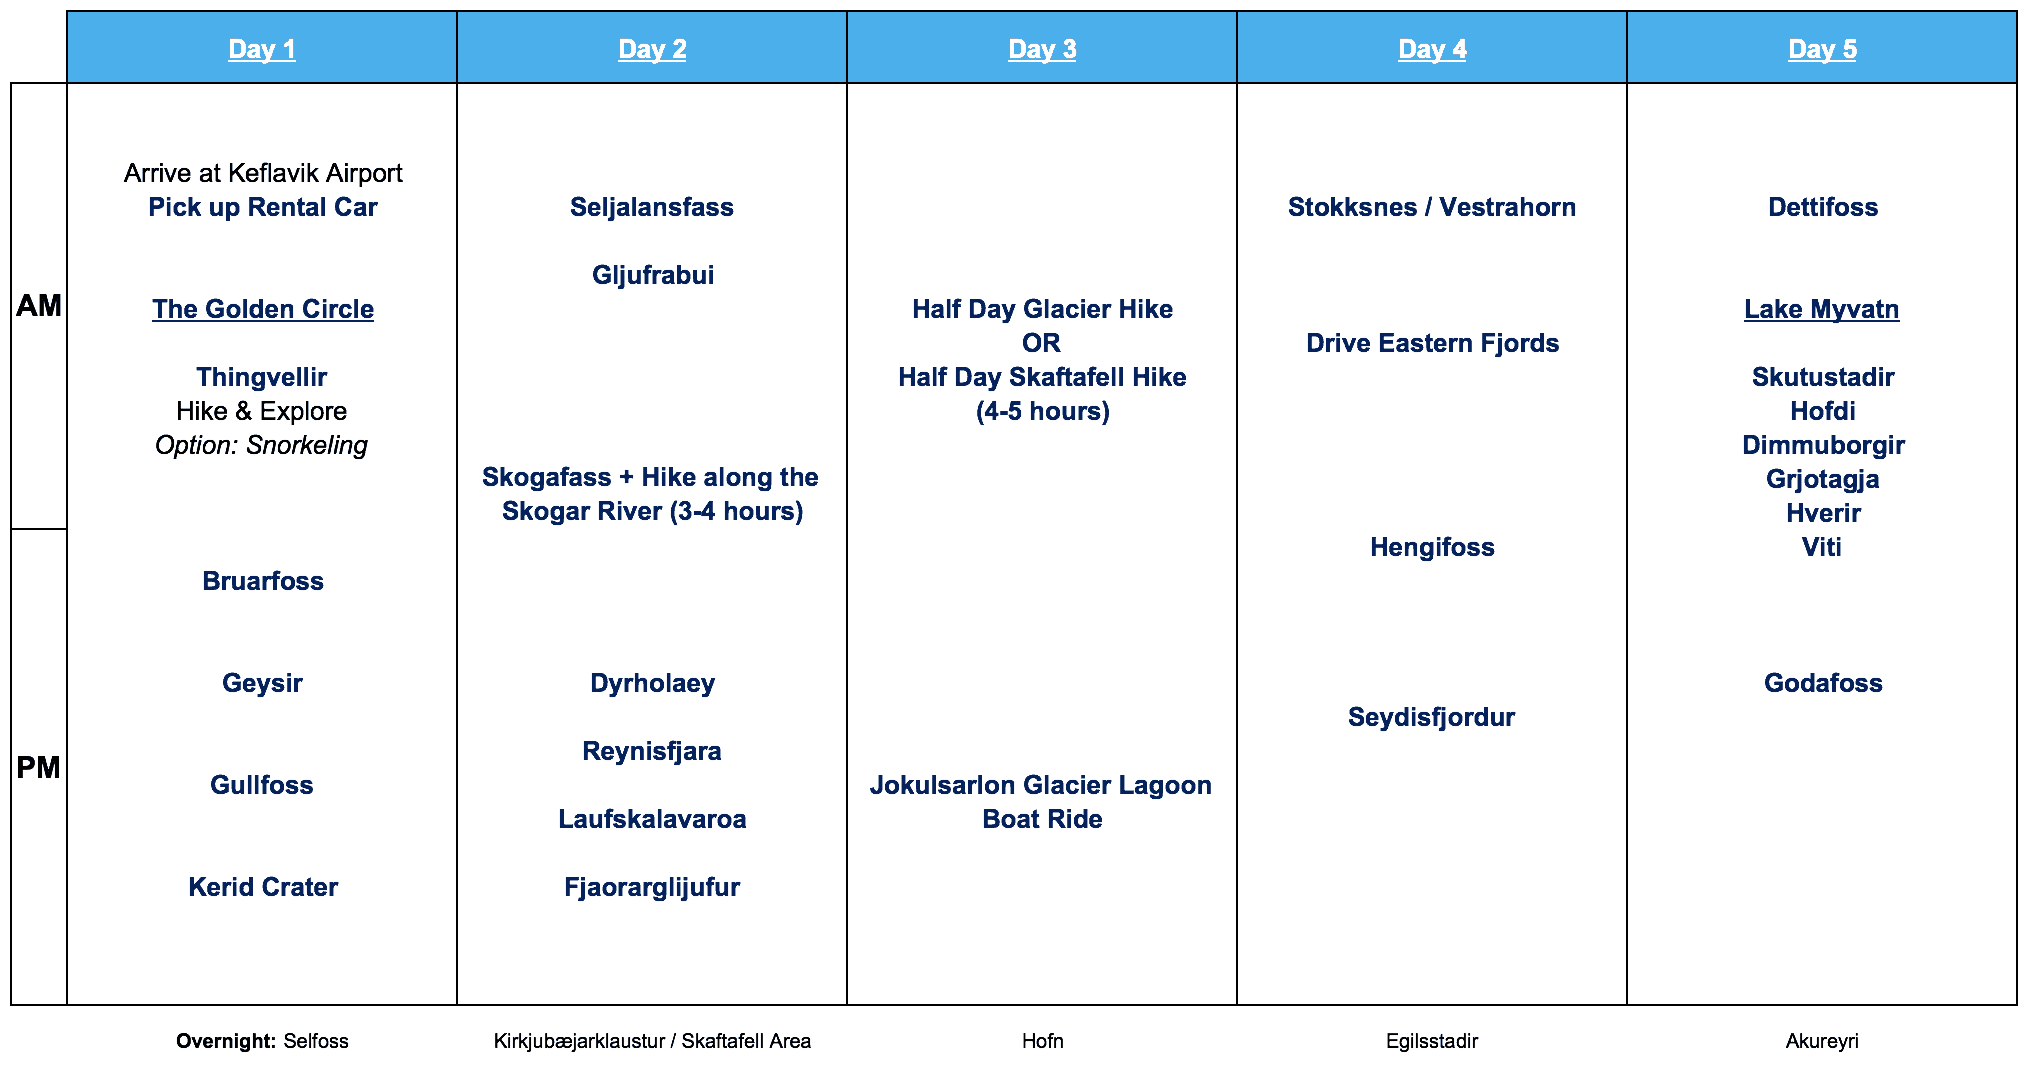 Iceland 10 Day Itinerary #1